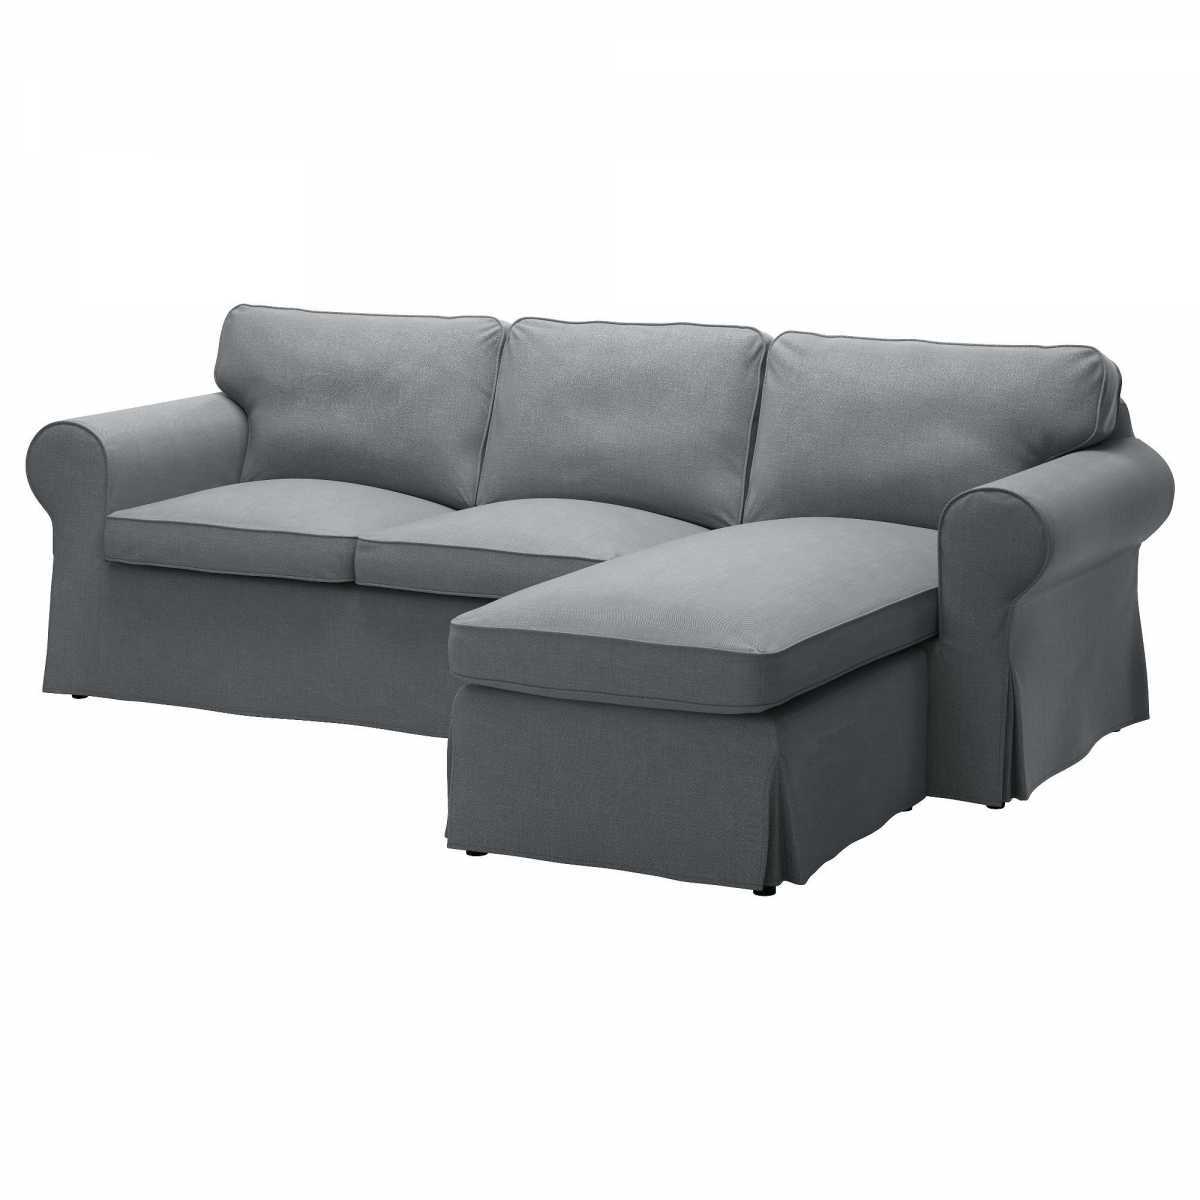 Chaise Loveseats Within Most Popular Loveseat : Chaise Loveseat New Small Loveseat With Chaise Lounge (View 3 of 15)